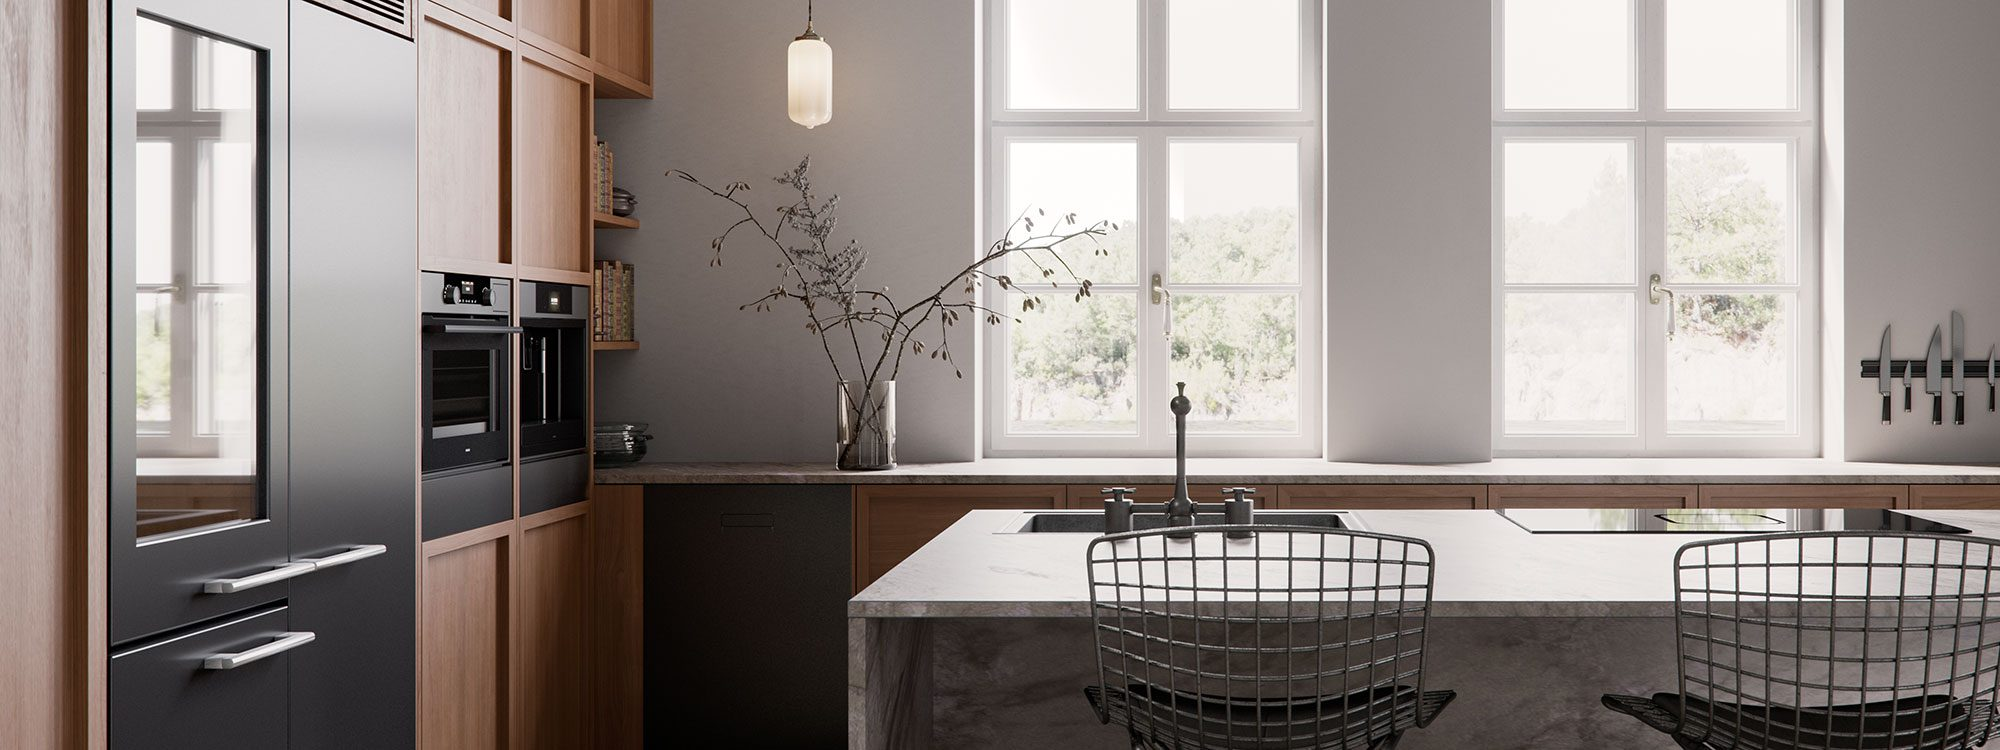 ASKO kitchen appliances - The heart of the home